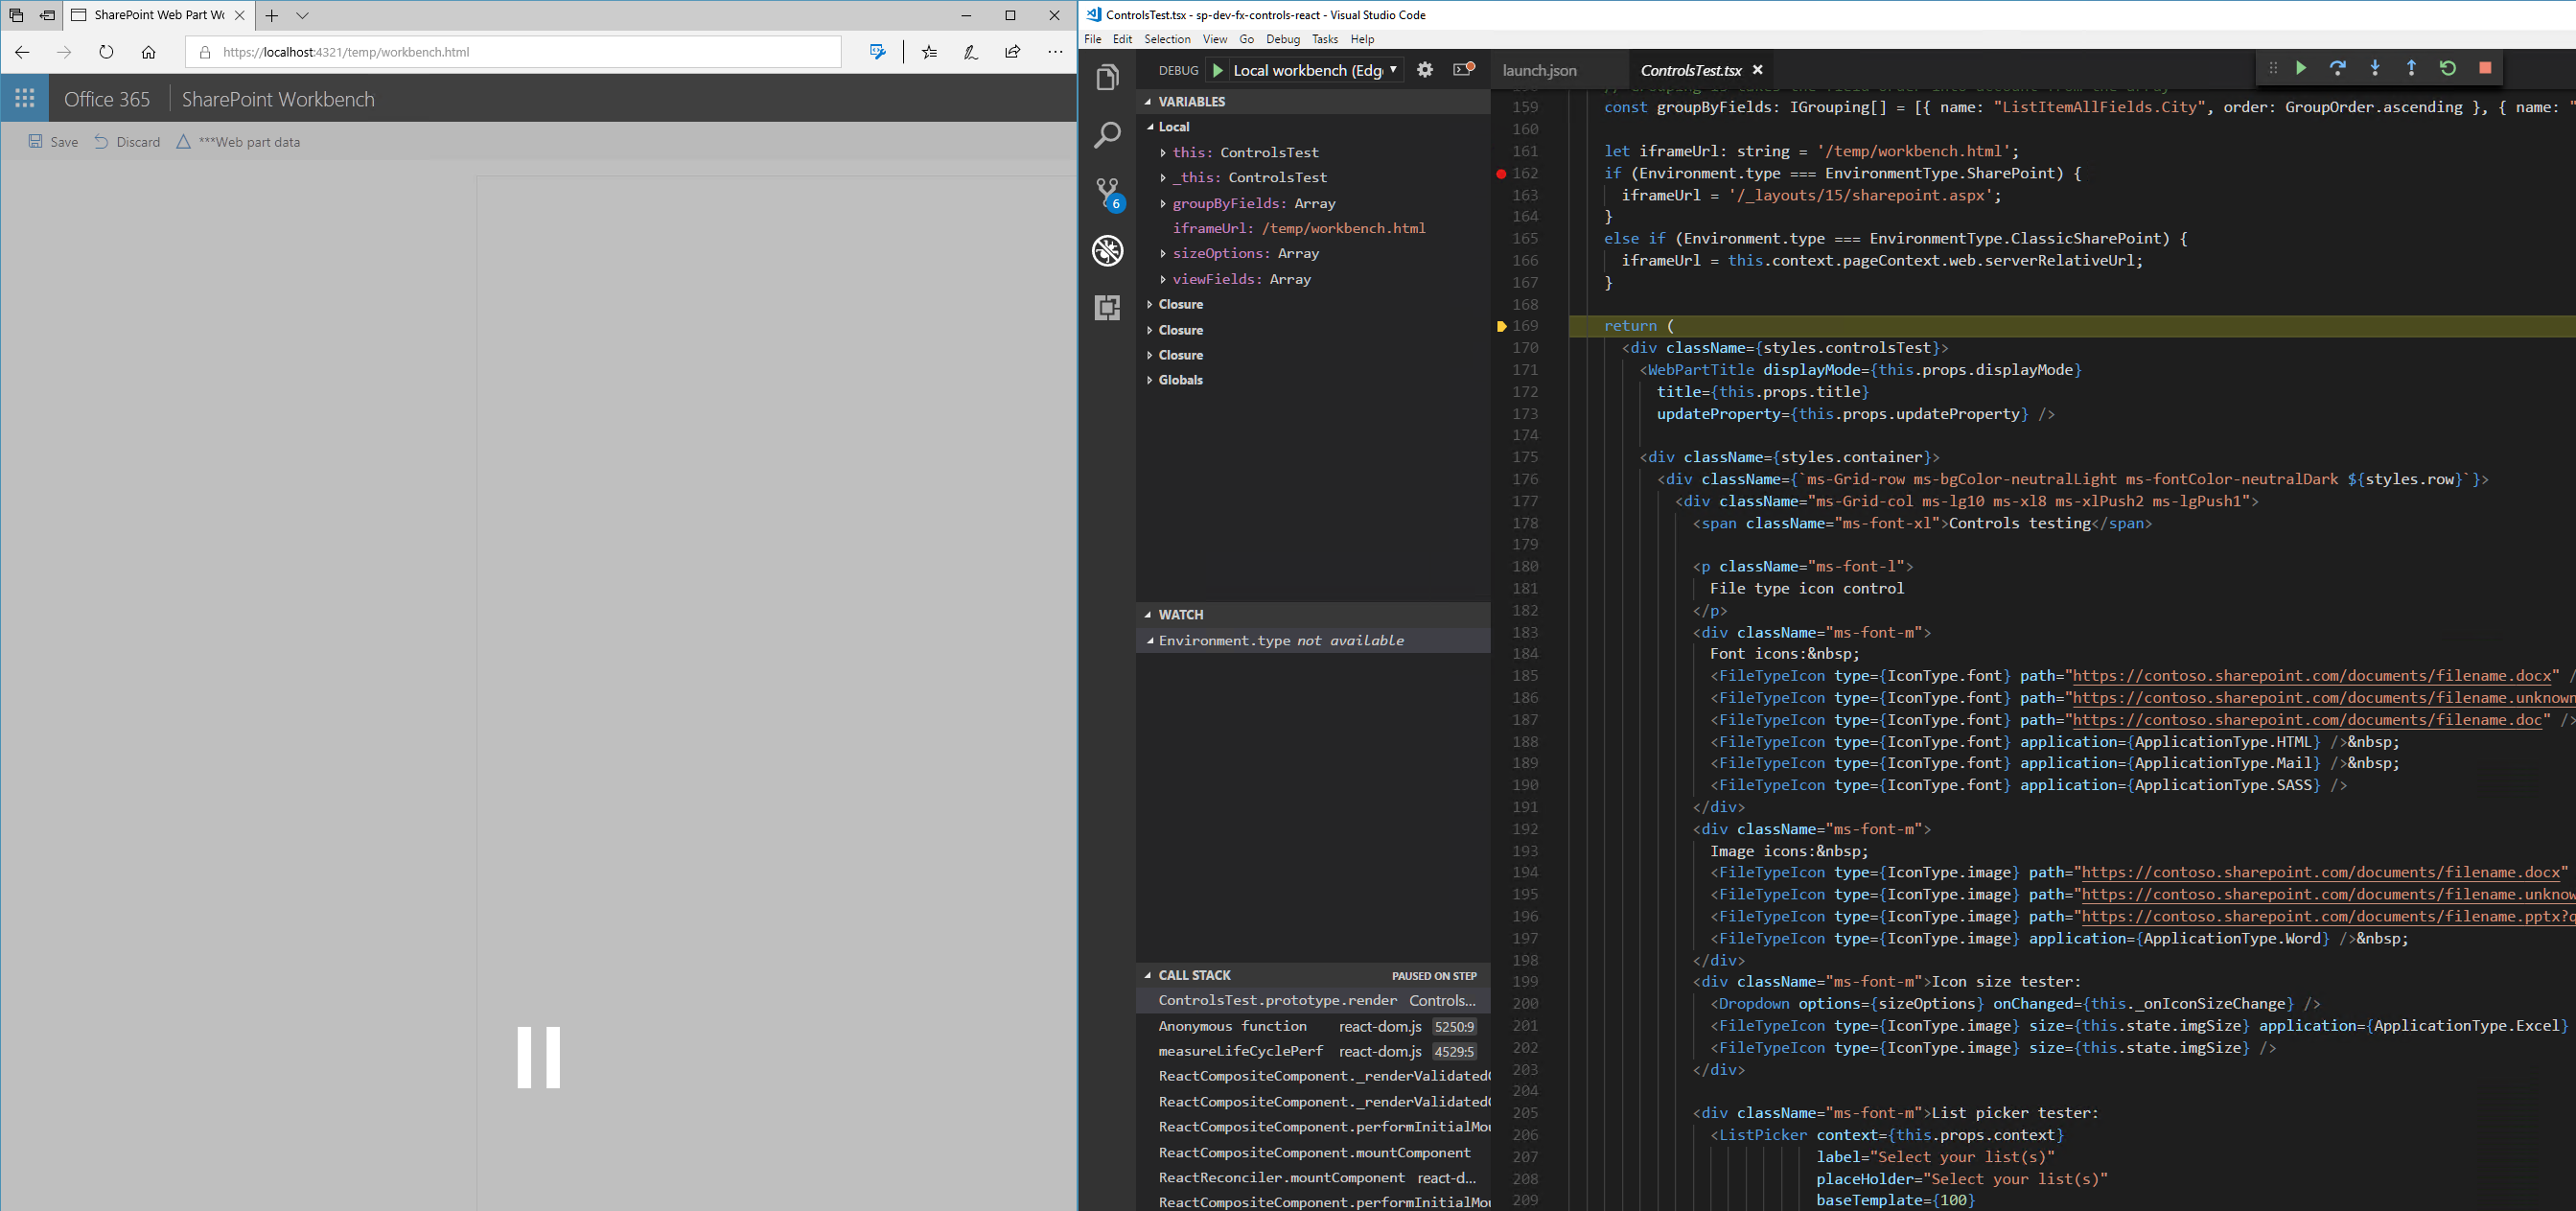 Debugging in Visual Studio Code with Microsoft Edge